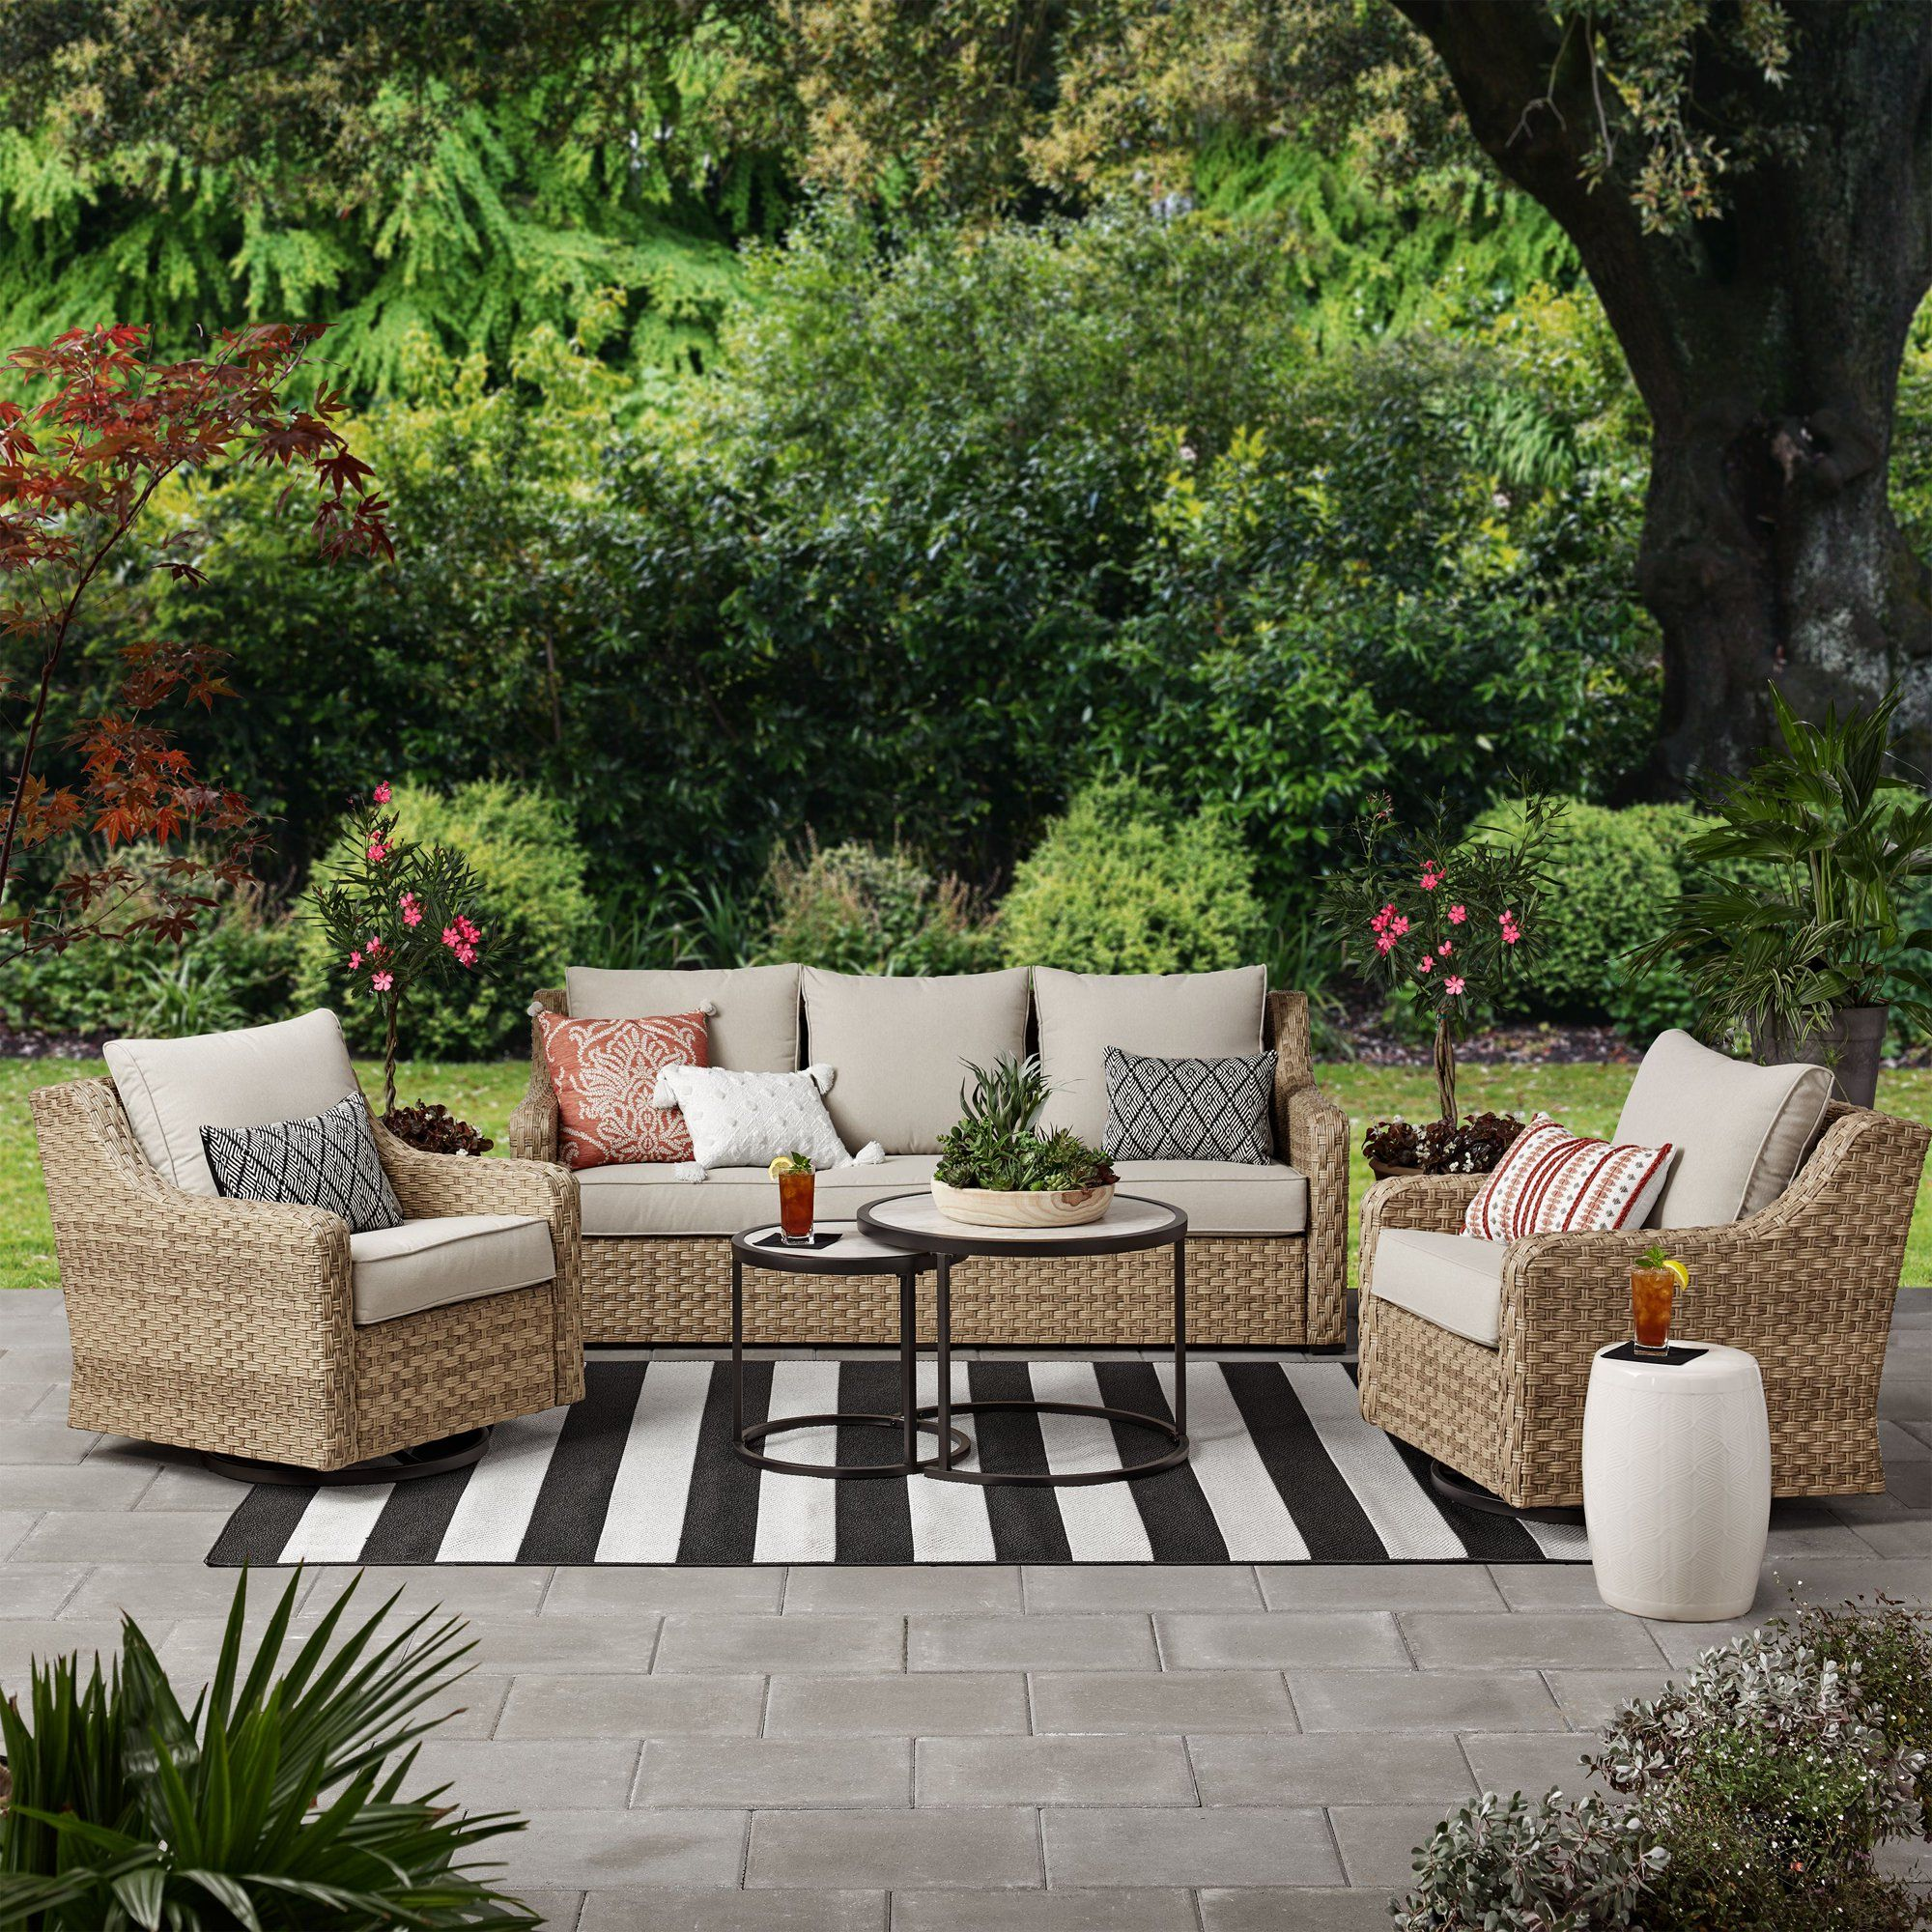 7ca491d4d49399d1fc5aee0040609f7f - Better Homes And Gardens Furniture Canada